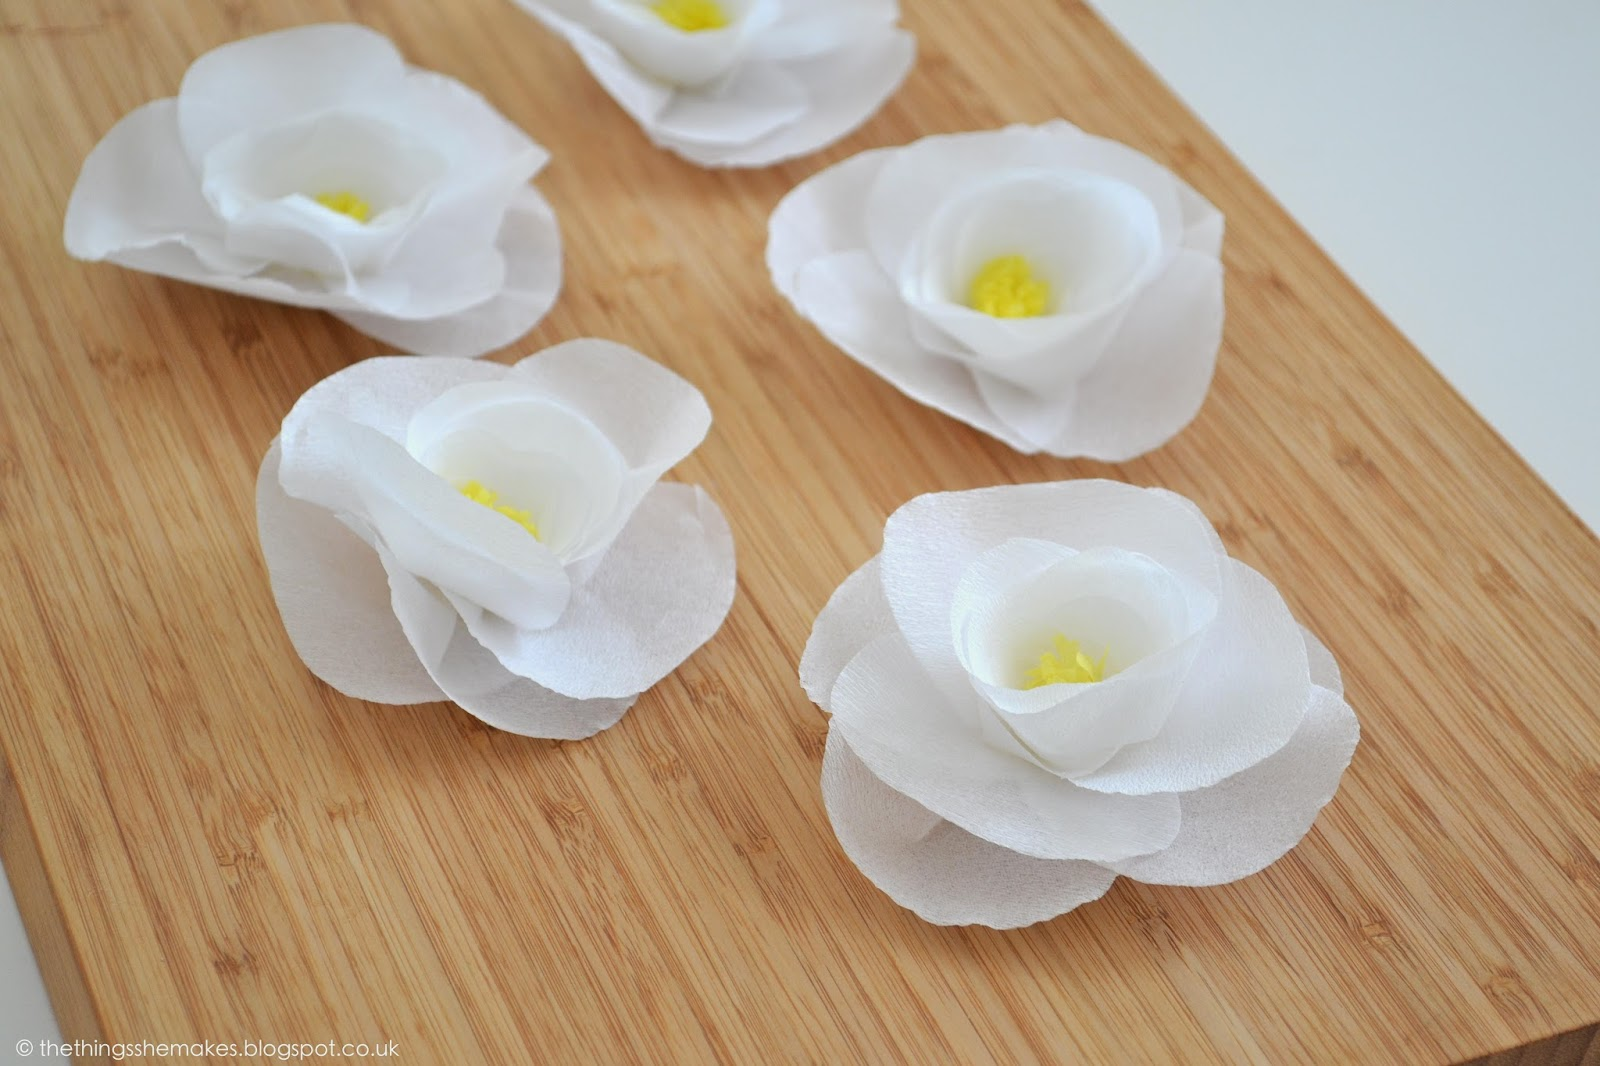 How To Make Tissue Paper Flower Akbaeenw